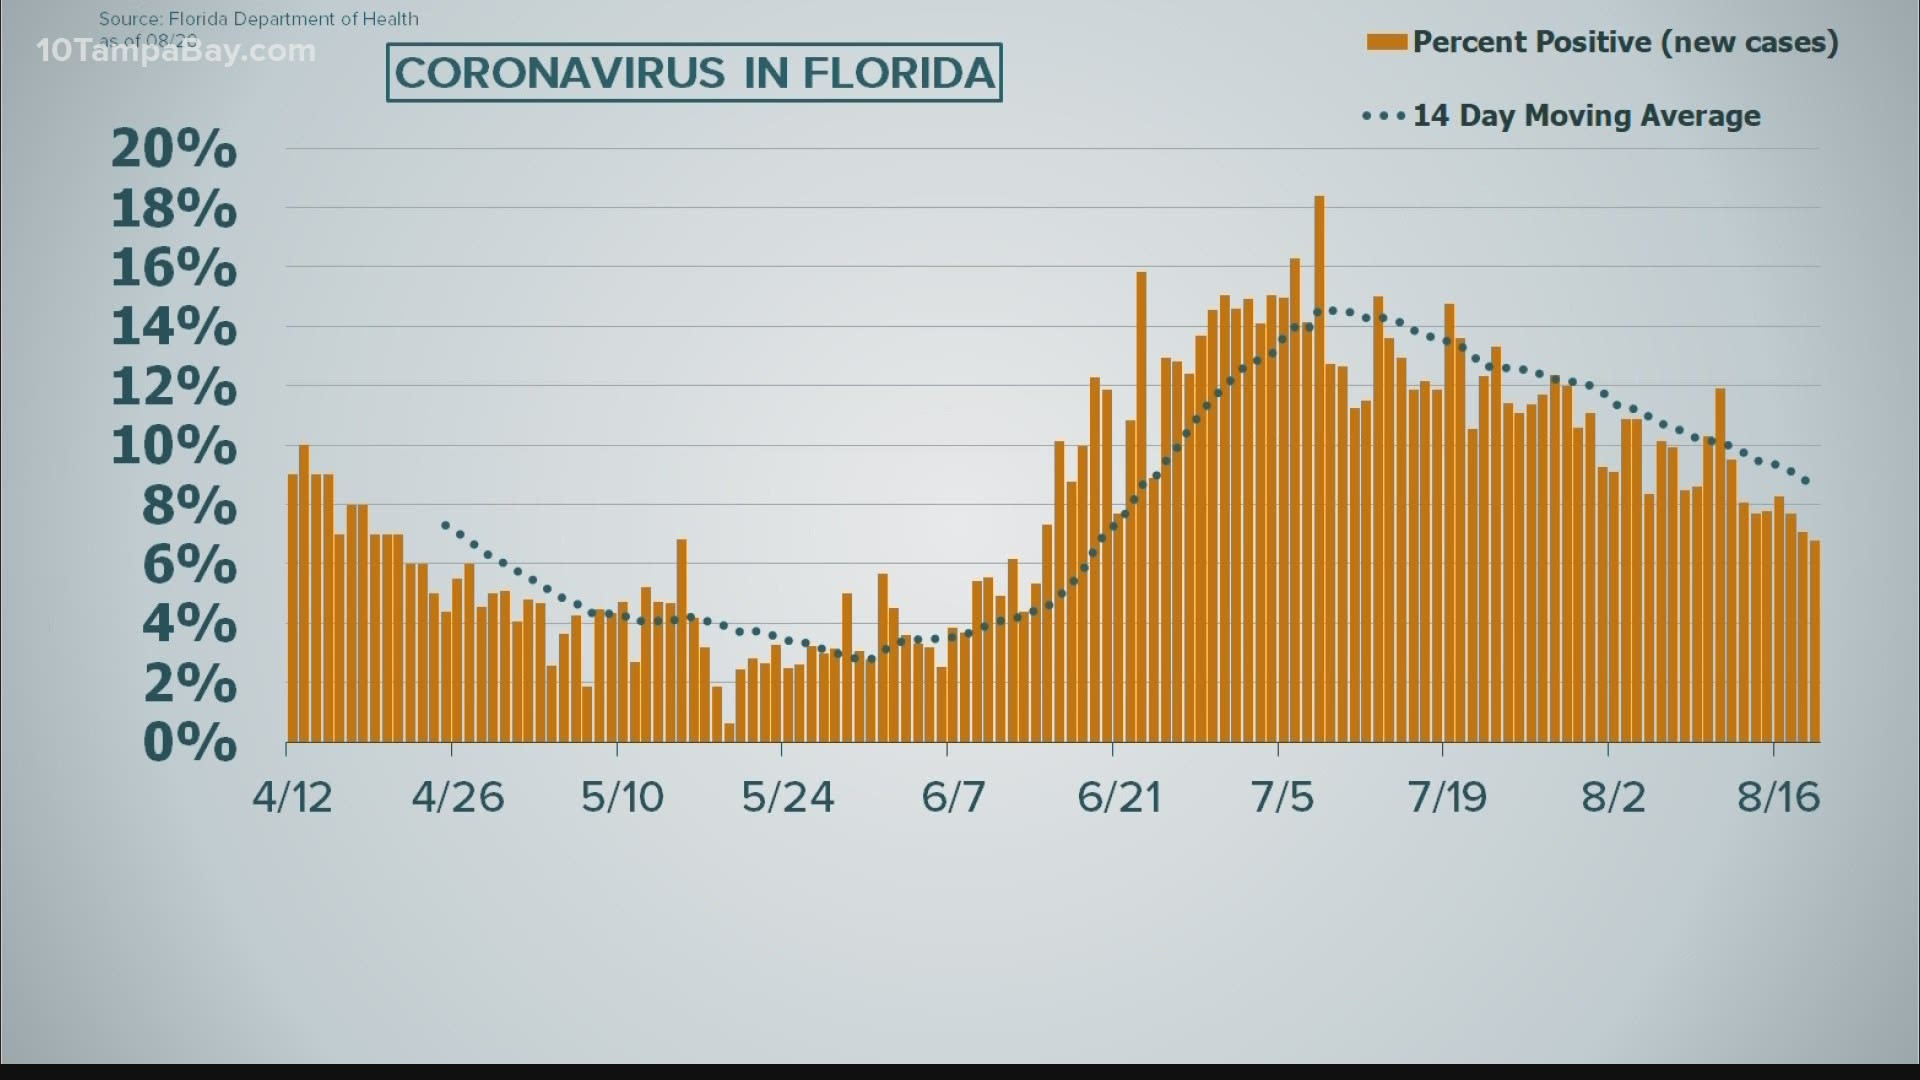 Florida Again Reports Lowest Covid 19 Positivity Rate In 2 Months Wkyc Com